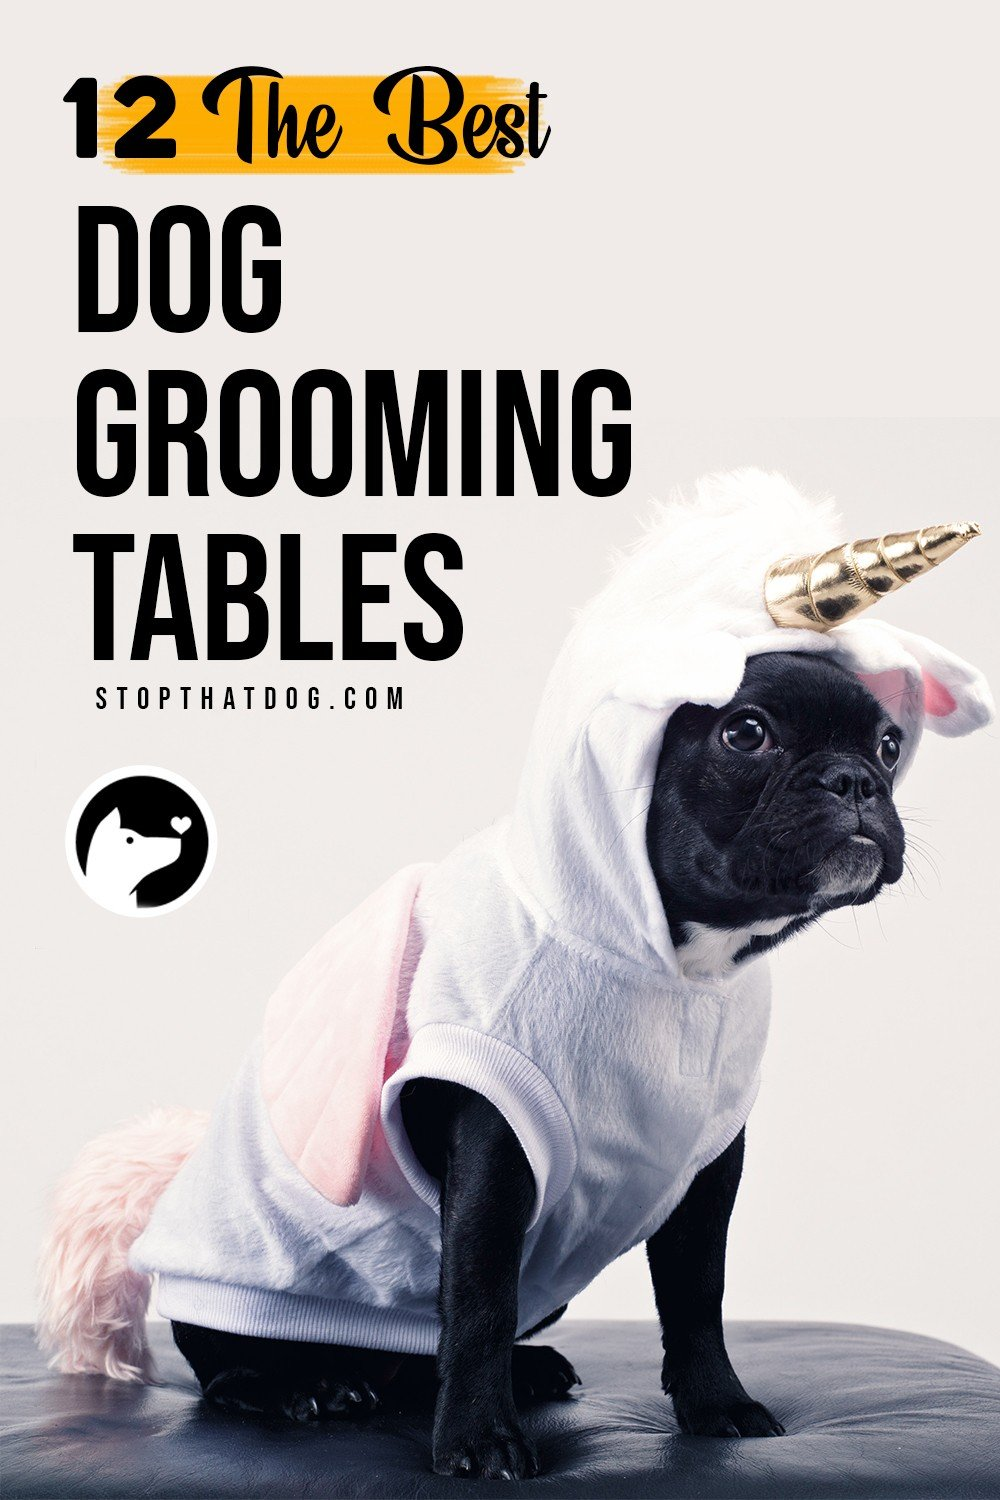 A quality dog grooming table makes grooming way more efficient and convenient. This guide reveals the best dog grooming tables on the market - and there\'s something for any budget!